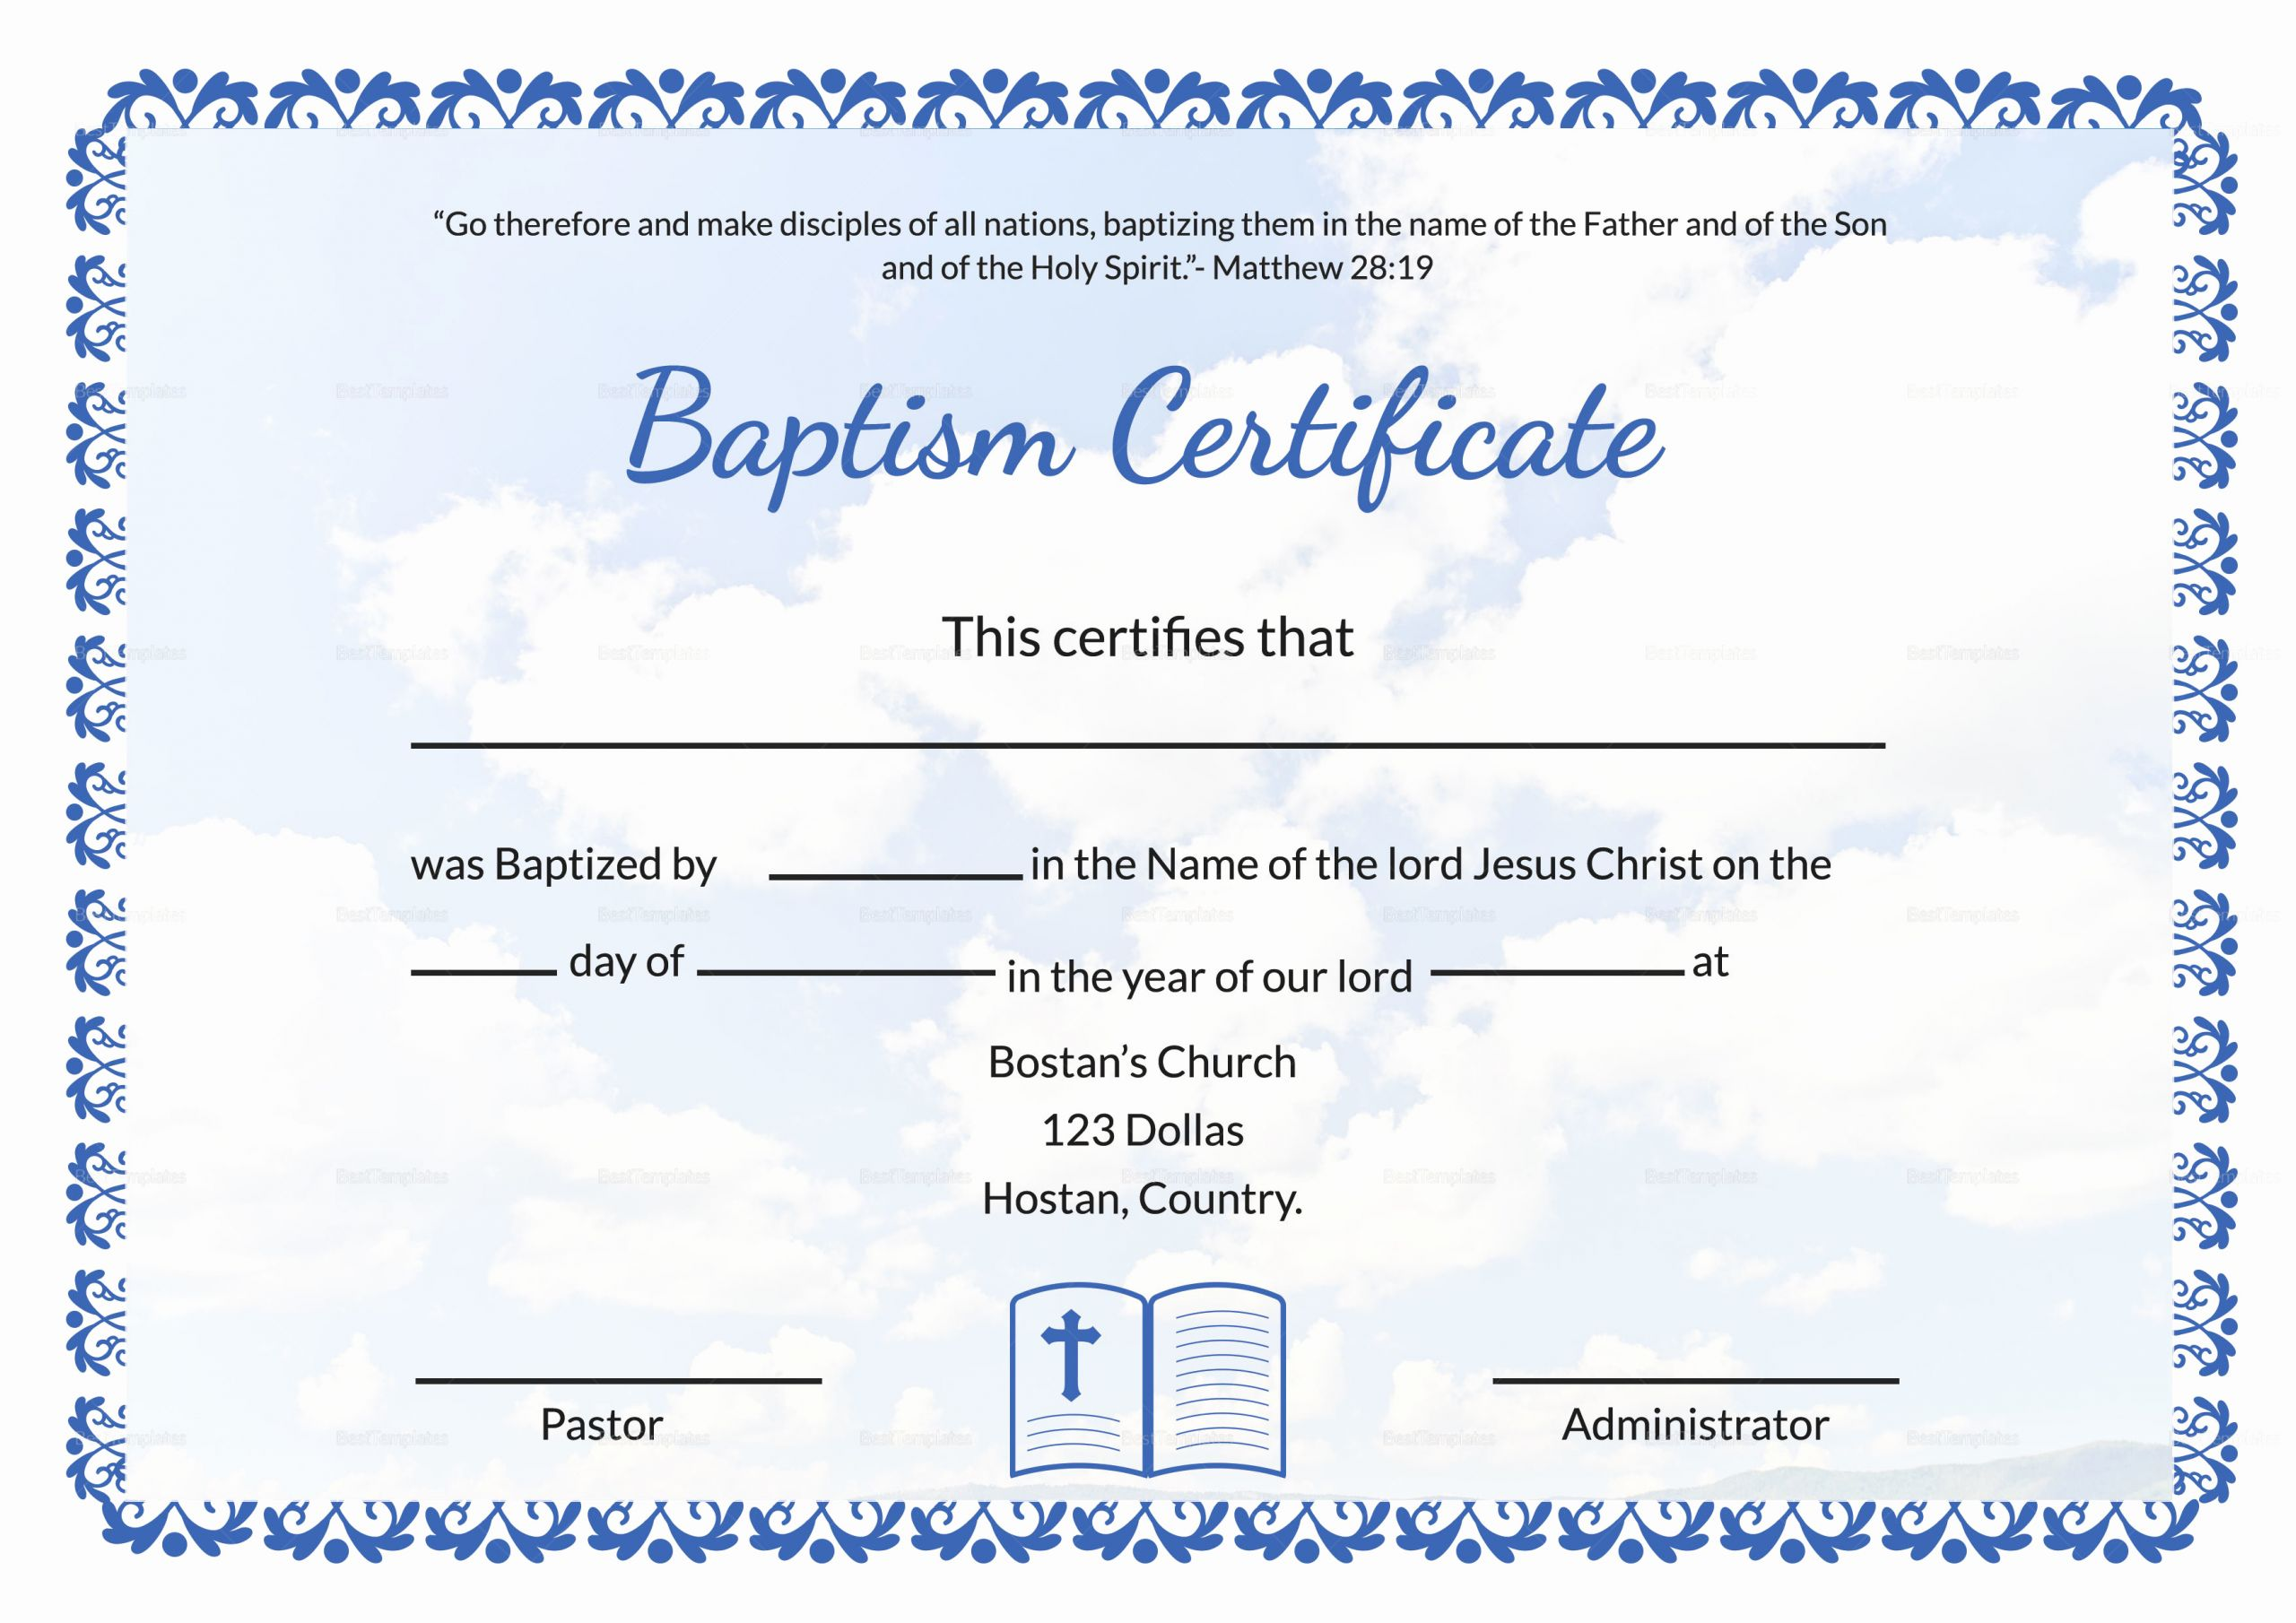 Free Baptism Certificate Template Inspirational Editable Baptism Certificate Template In Adobe Shop